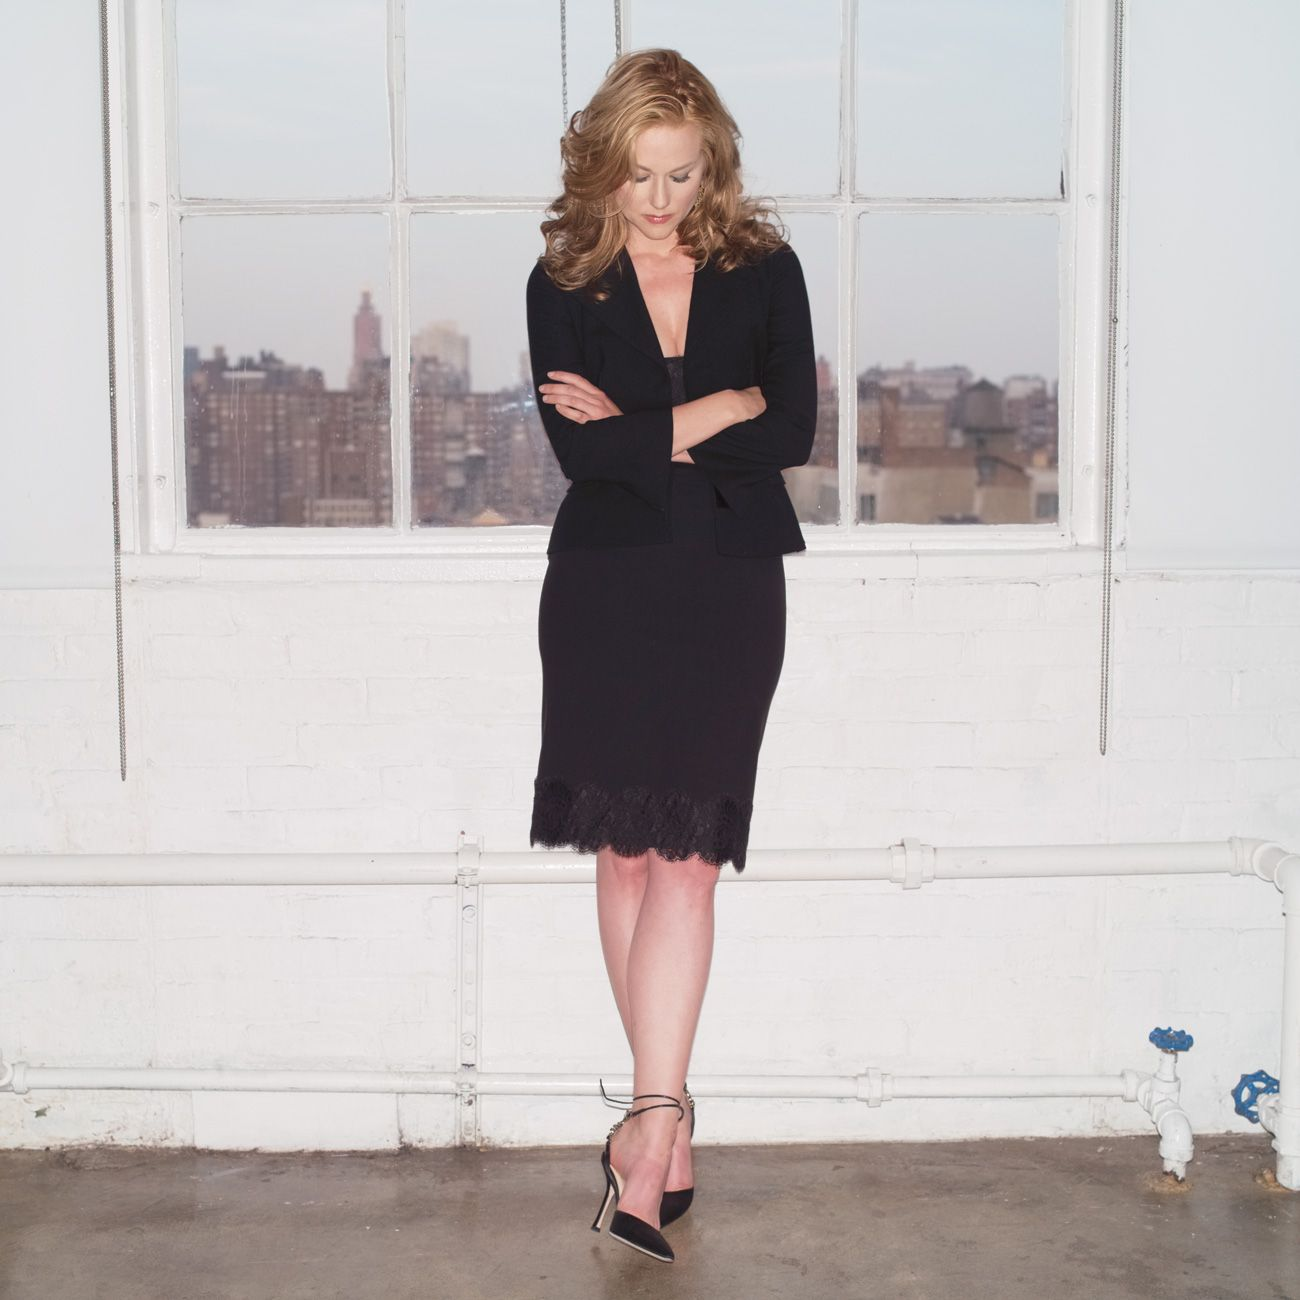 Laura Linney is my hot older woman crush